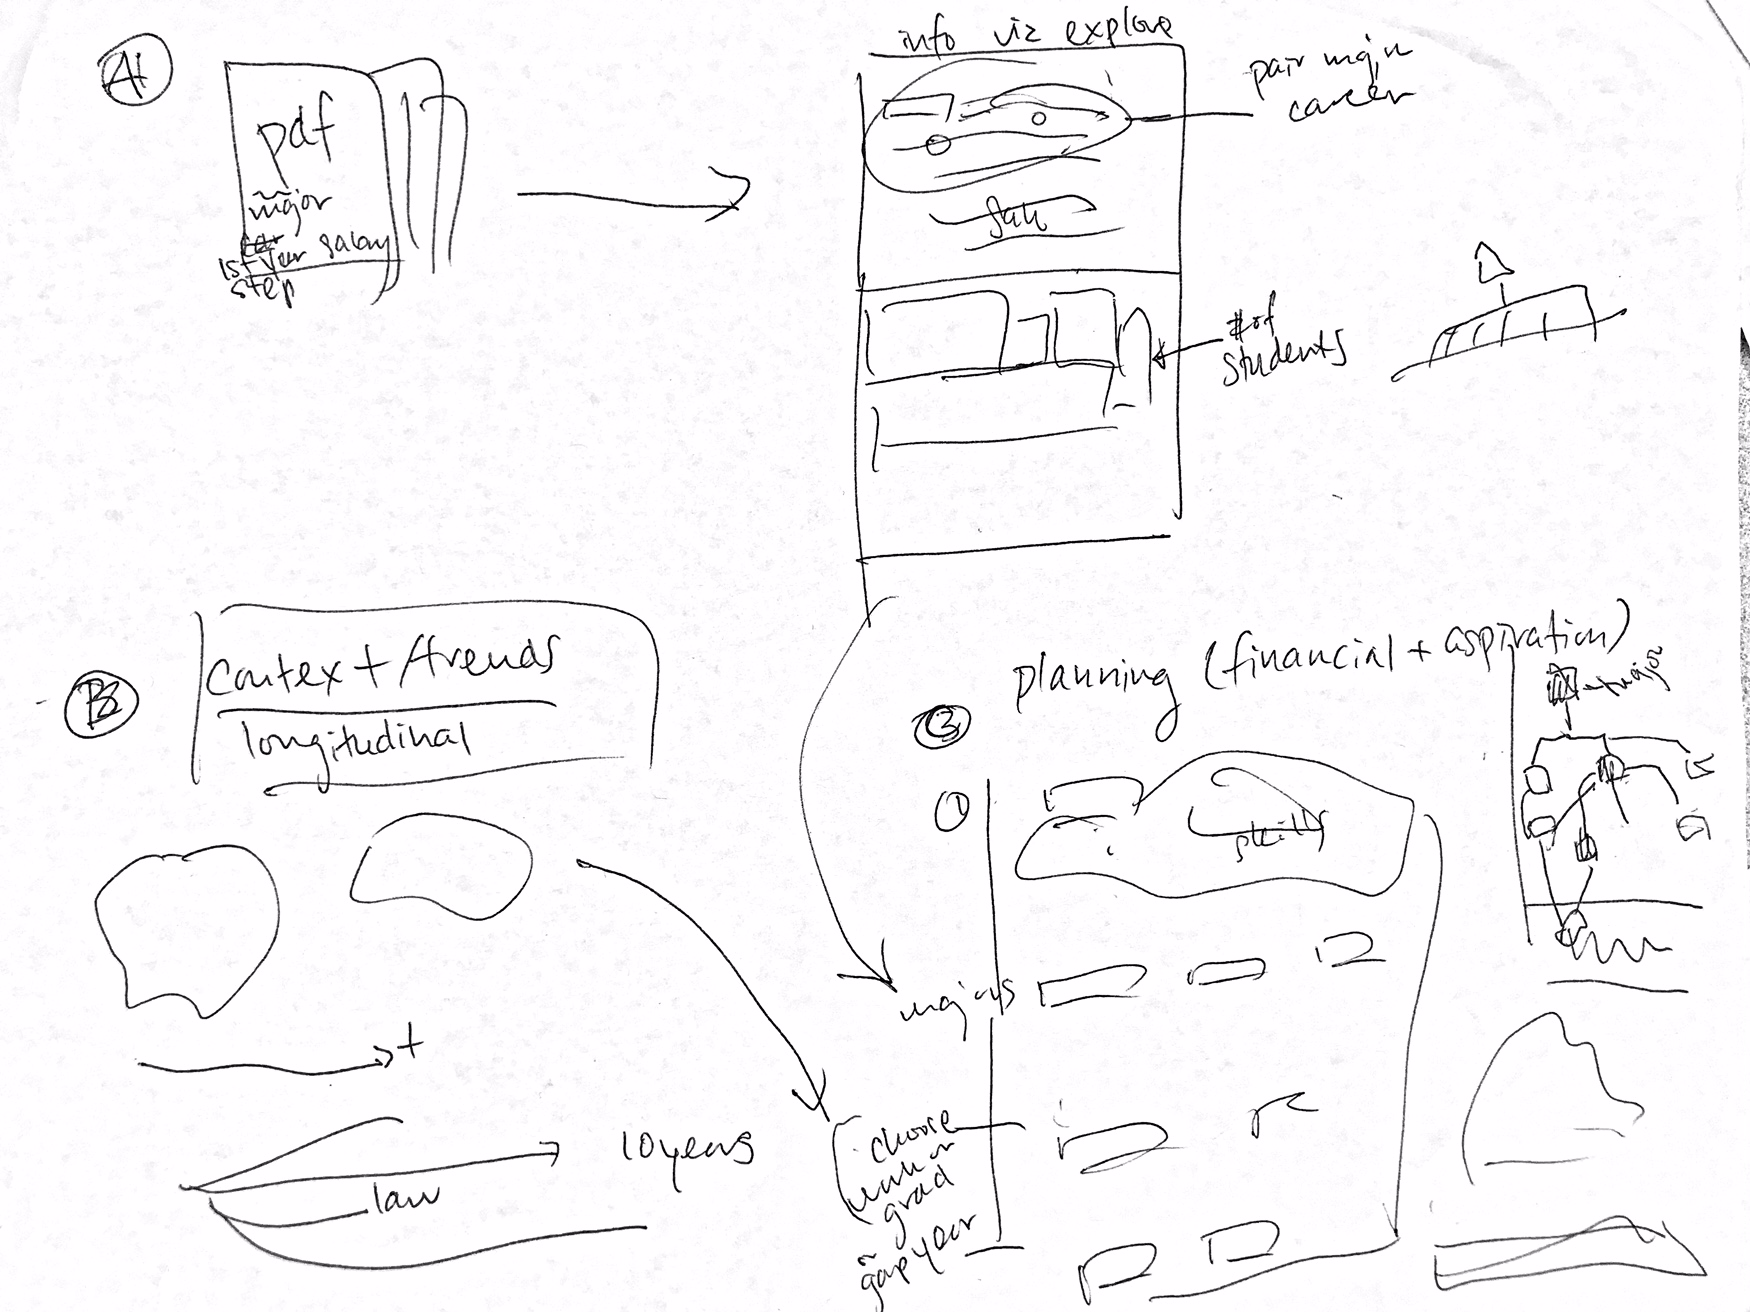 We initially wanted to cover three different components: contextualization, exploration and planning